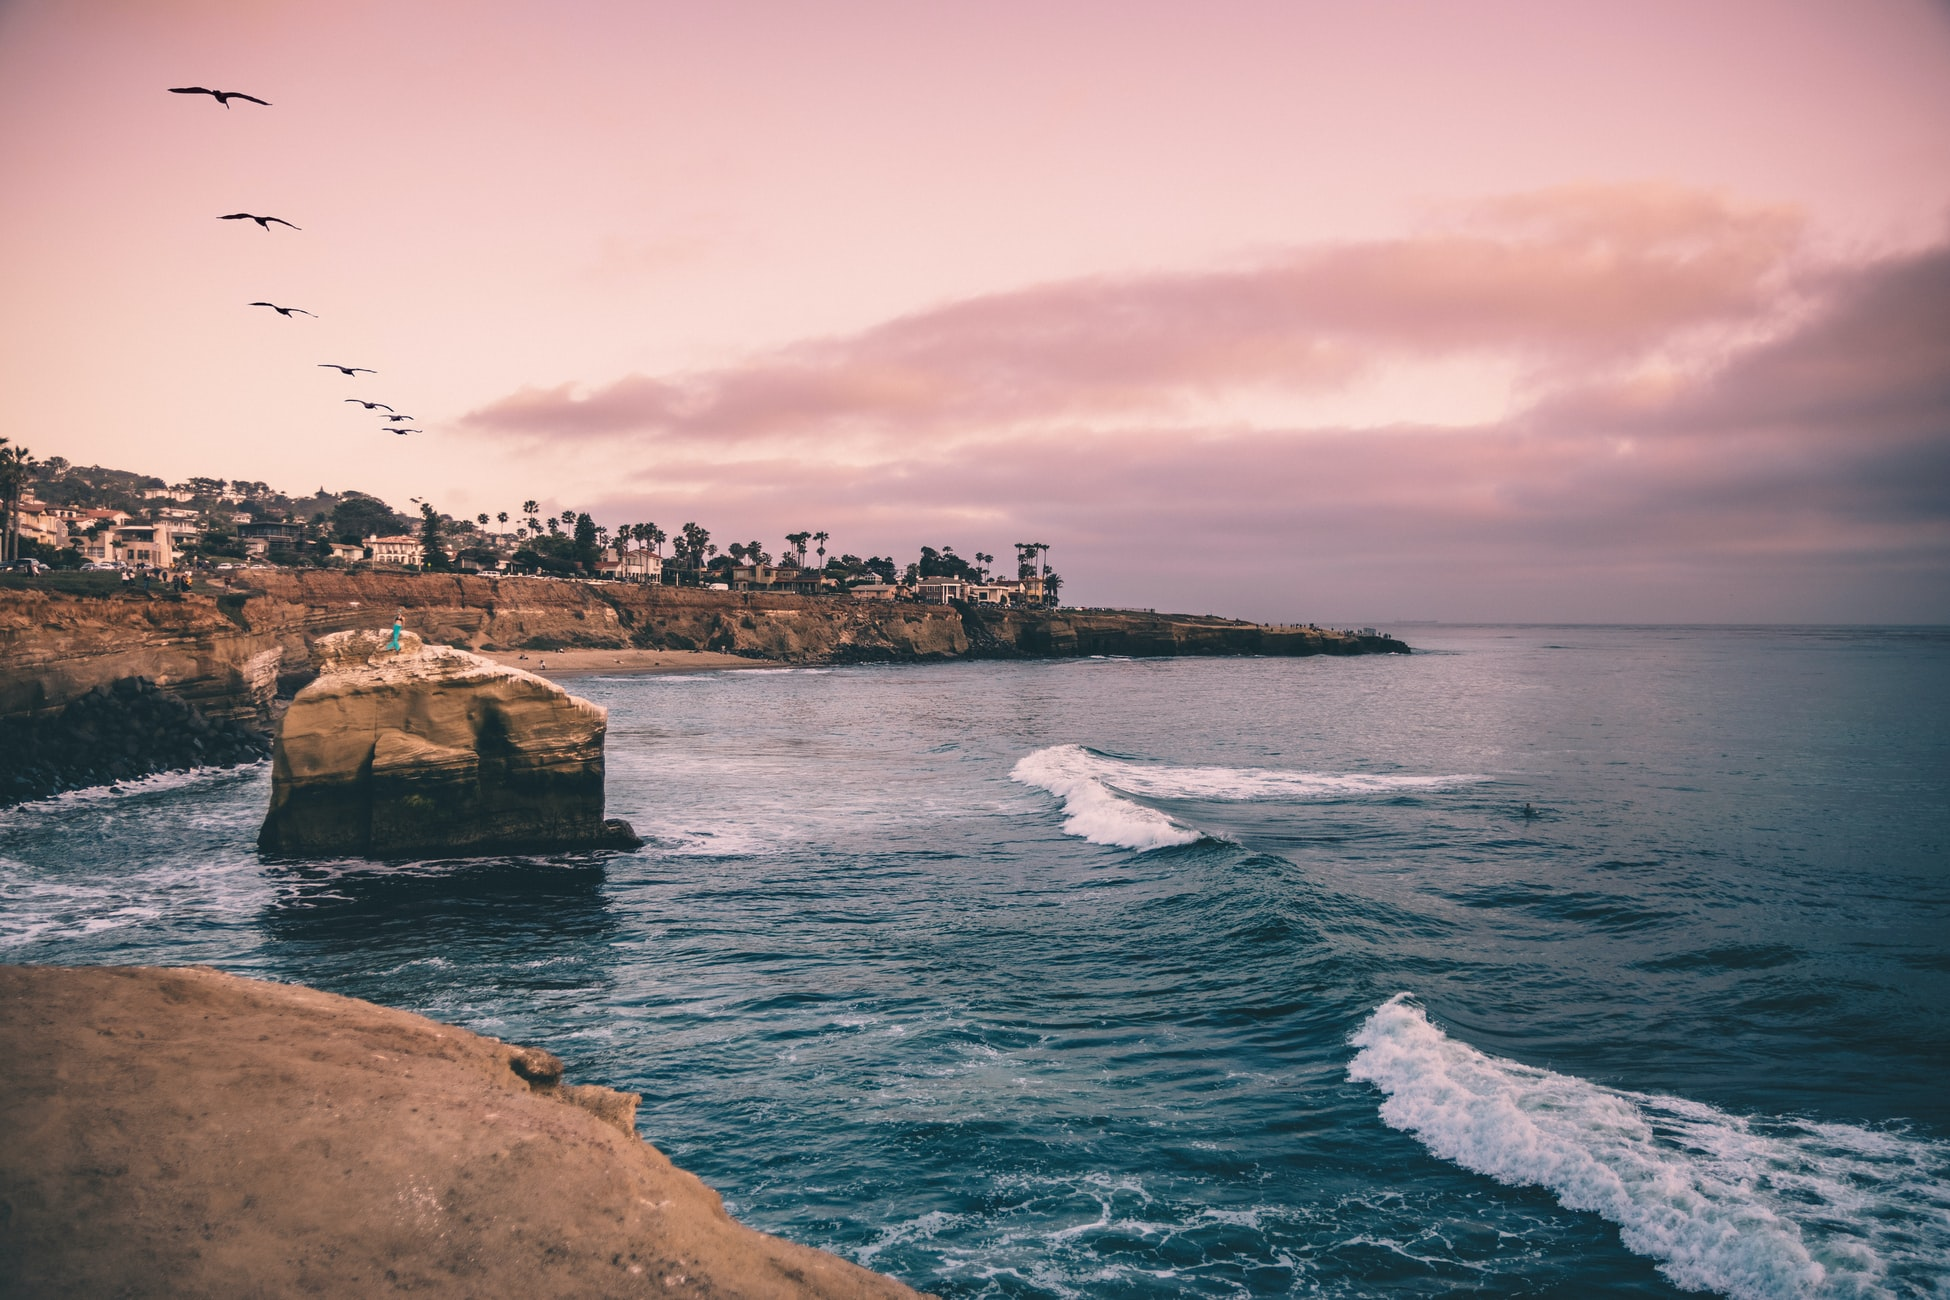 Sea - Things to Do in San Diego